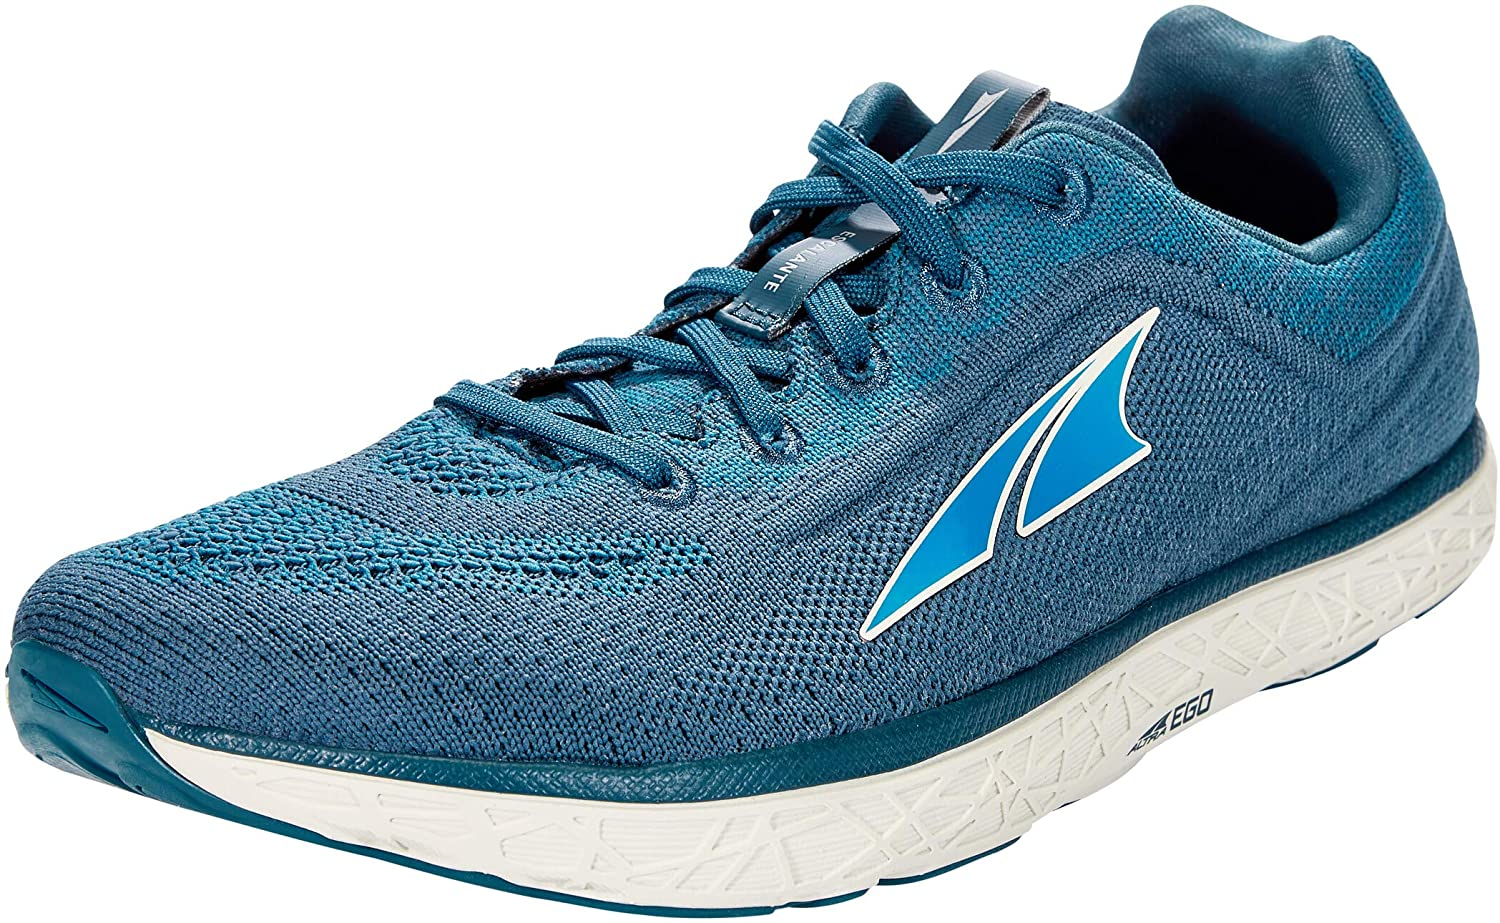 Altra Men's Escalante 2.5 Road Running Shoe in Majolica Blue from the side